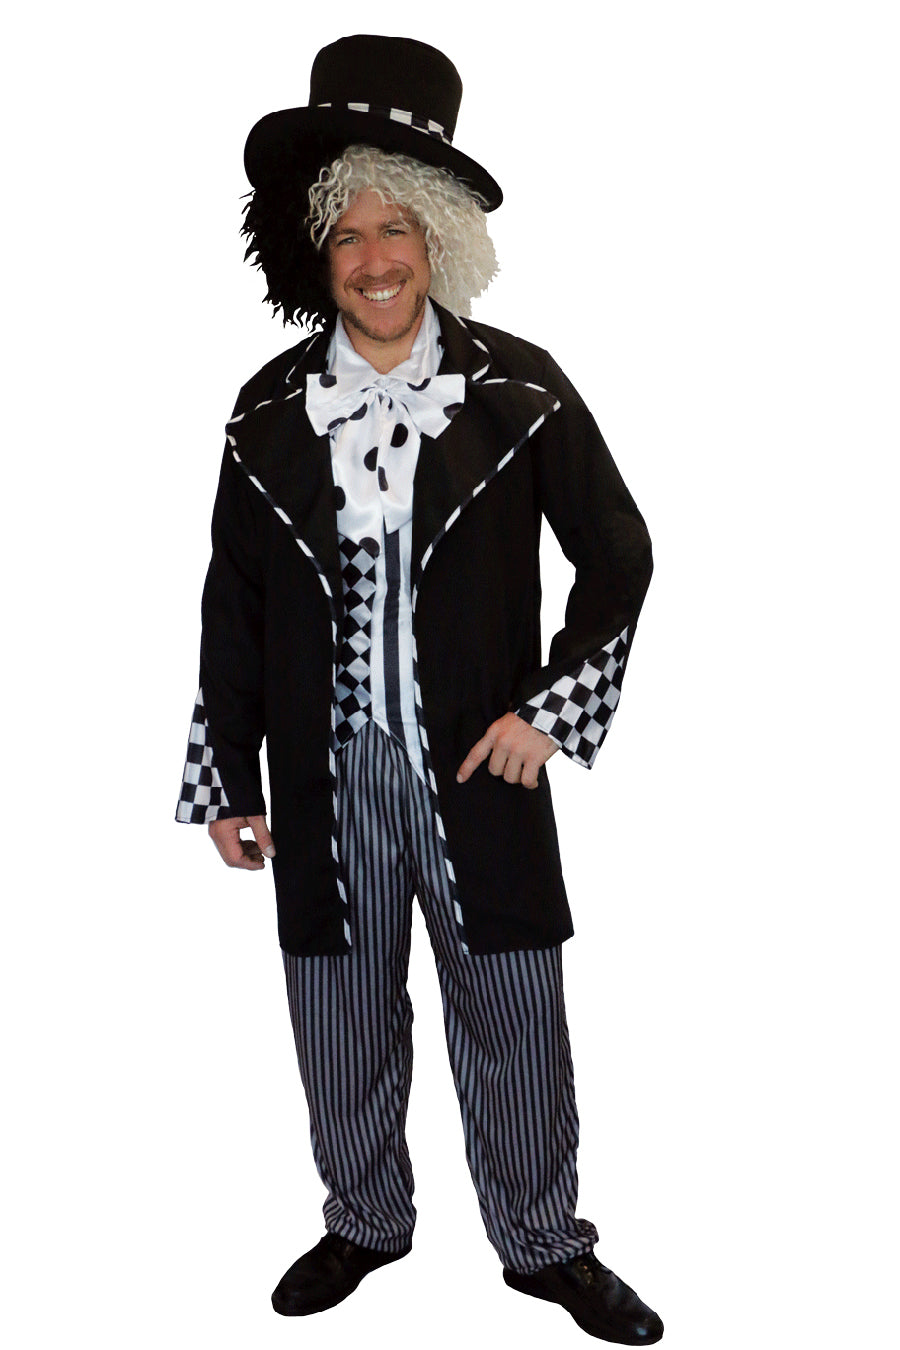 DARK MAD HATTER COSTUME, ADULT - SIZE M